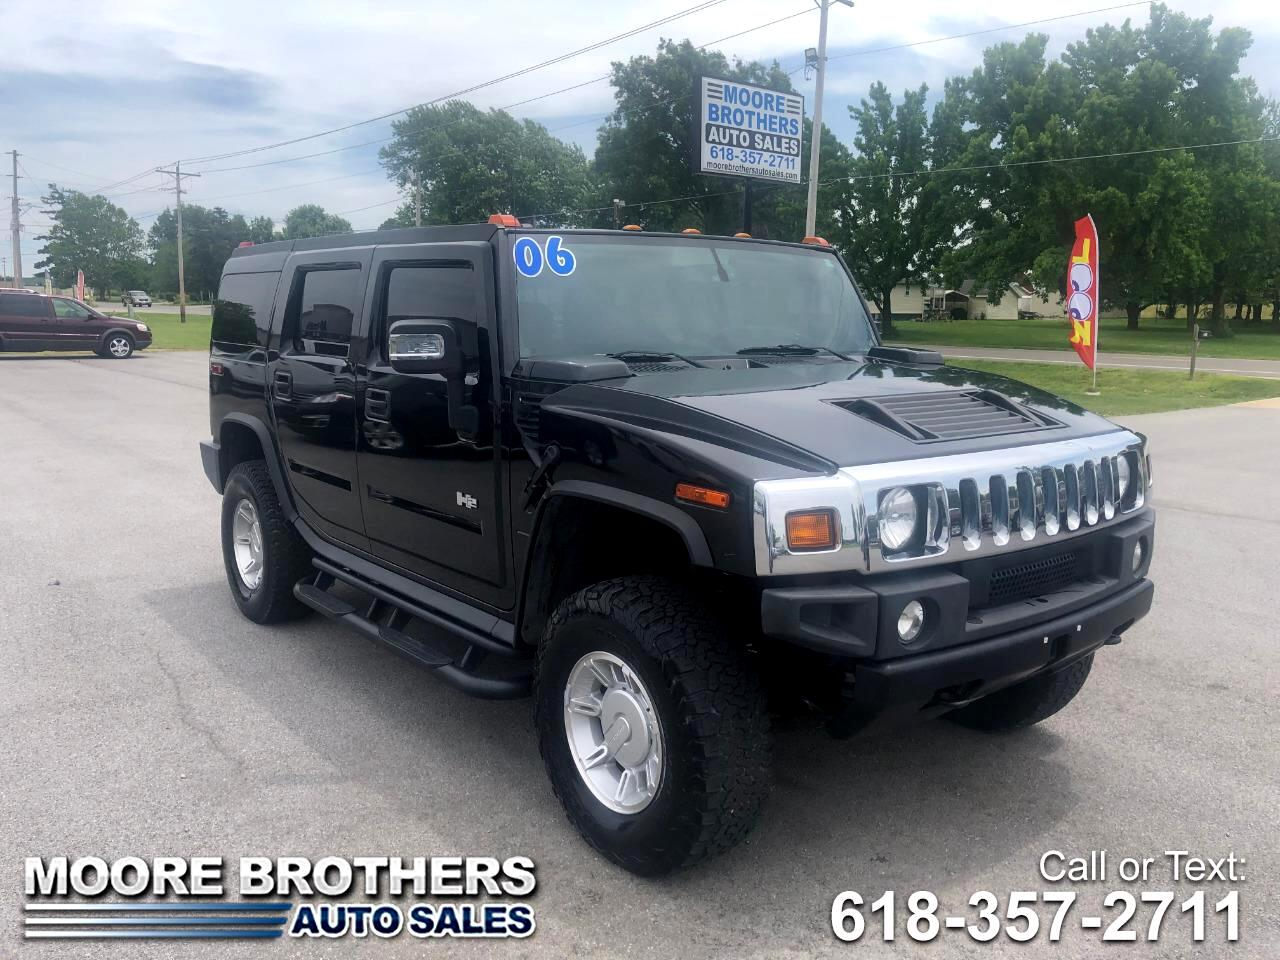 Brothers Auto Sales >> Used Cars For Sale Pinckneyville Il 62274 Moore Brothers